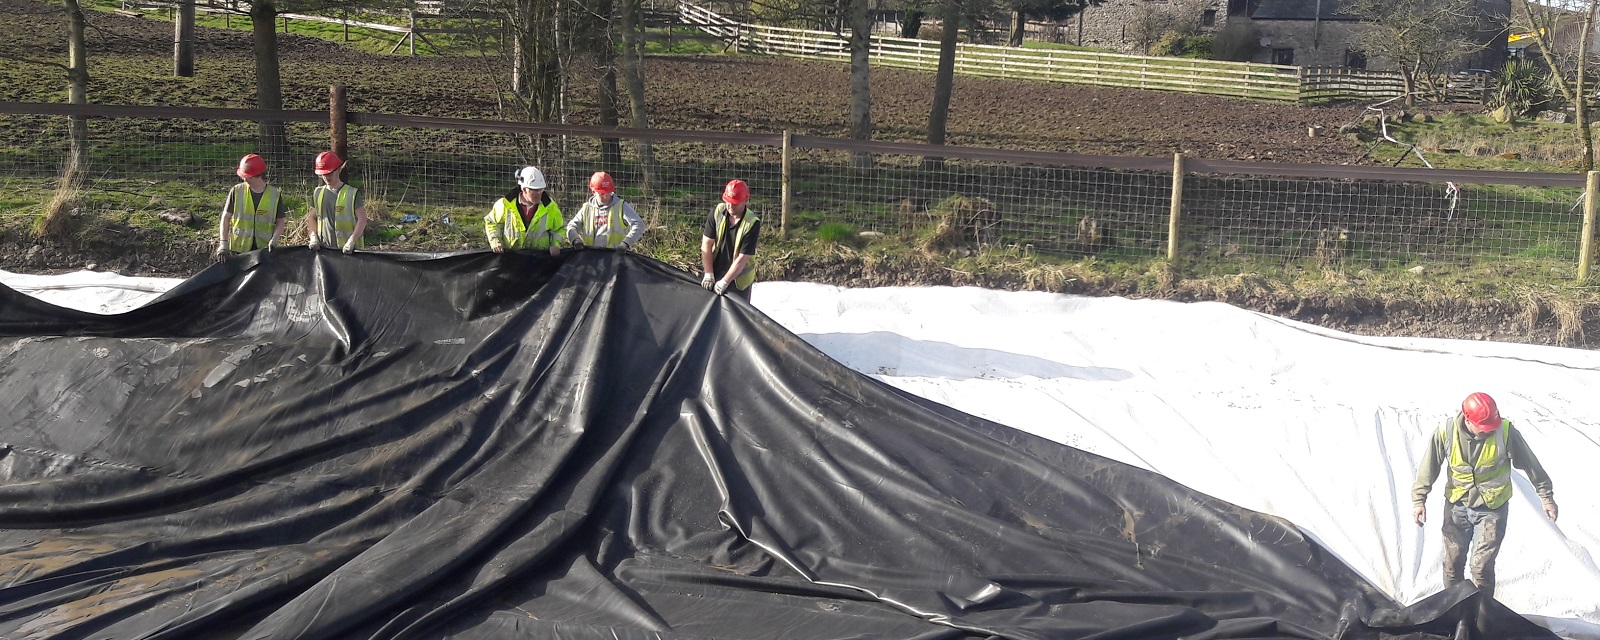 Commercial pond and lake liners